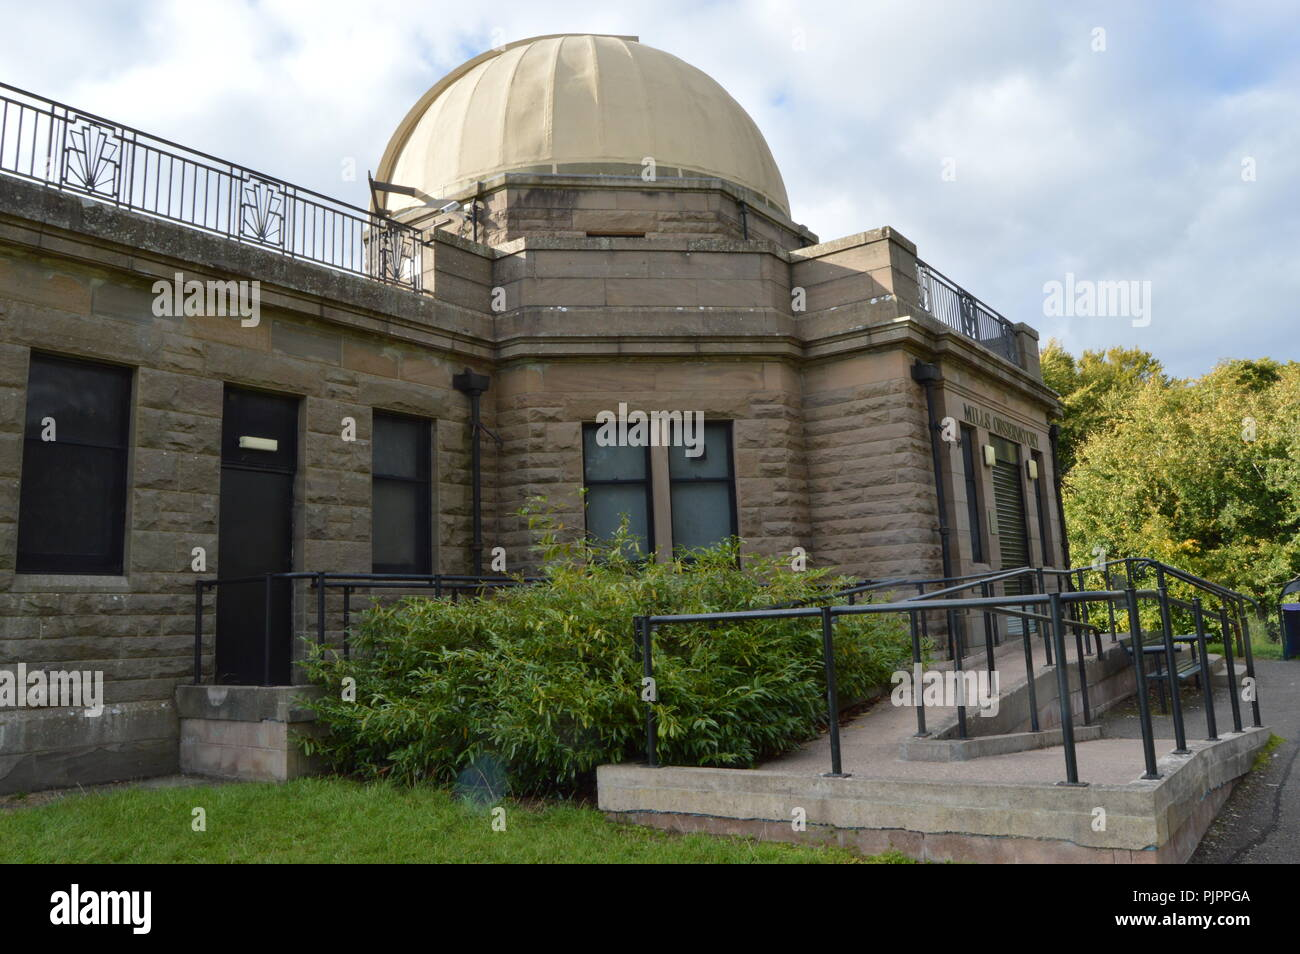 Mills Observatory on Balgay Hill, Dundee, Scotland, September 2018 - Stock Image